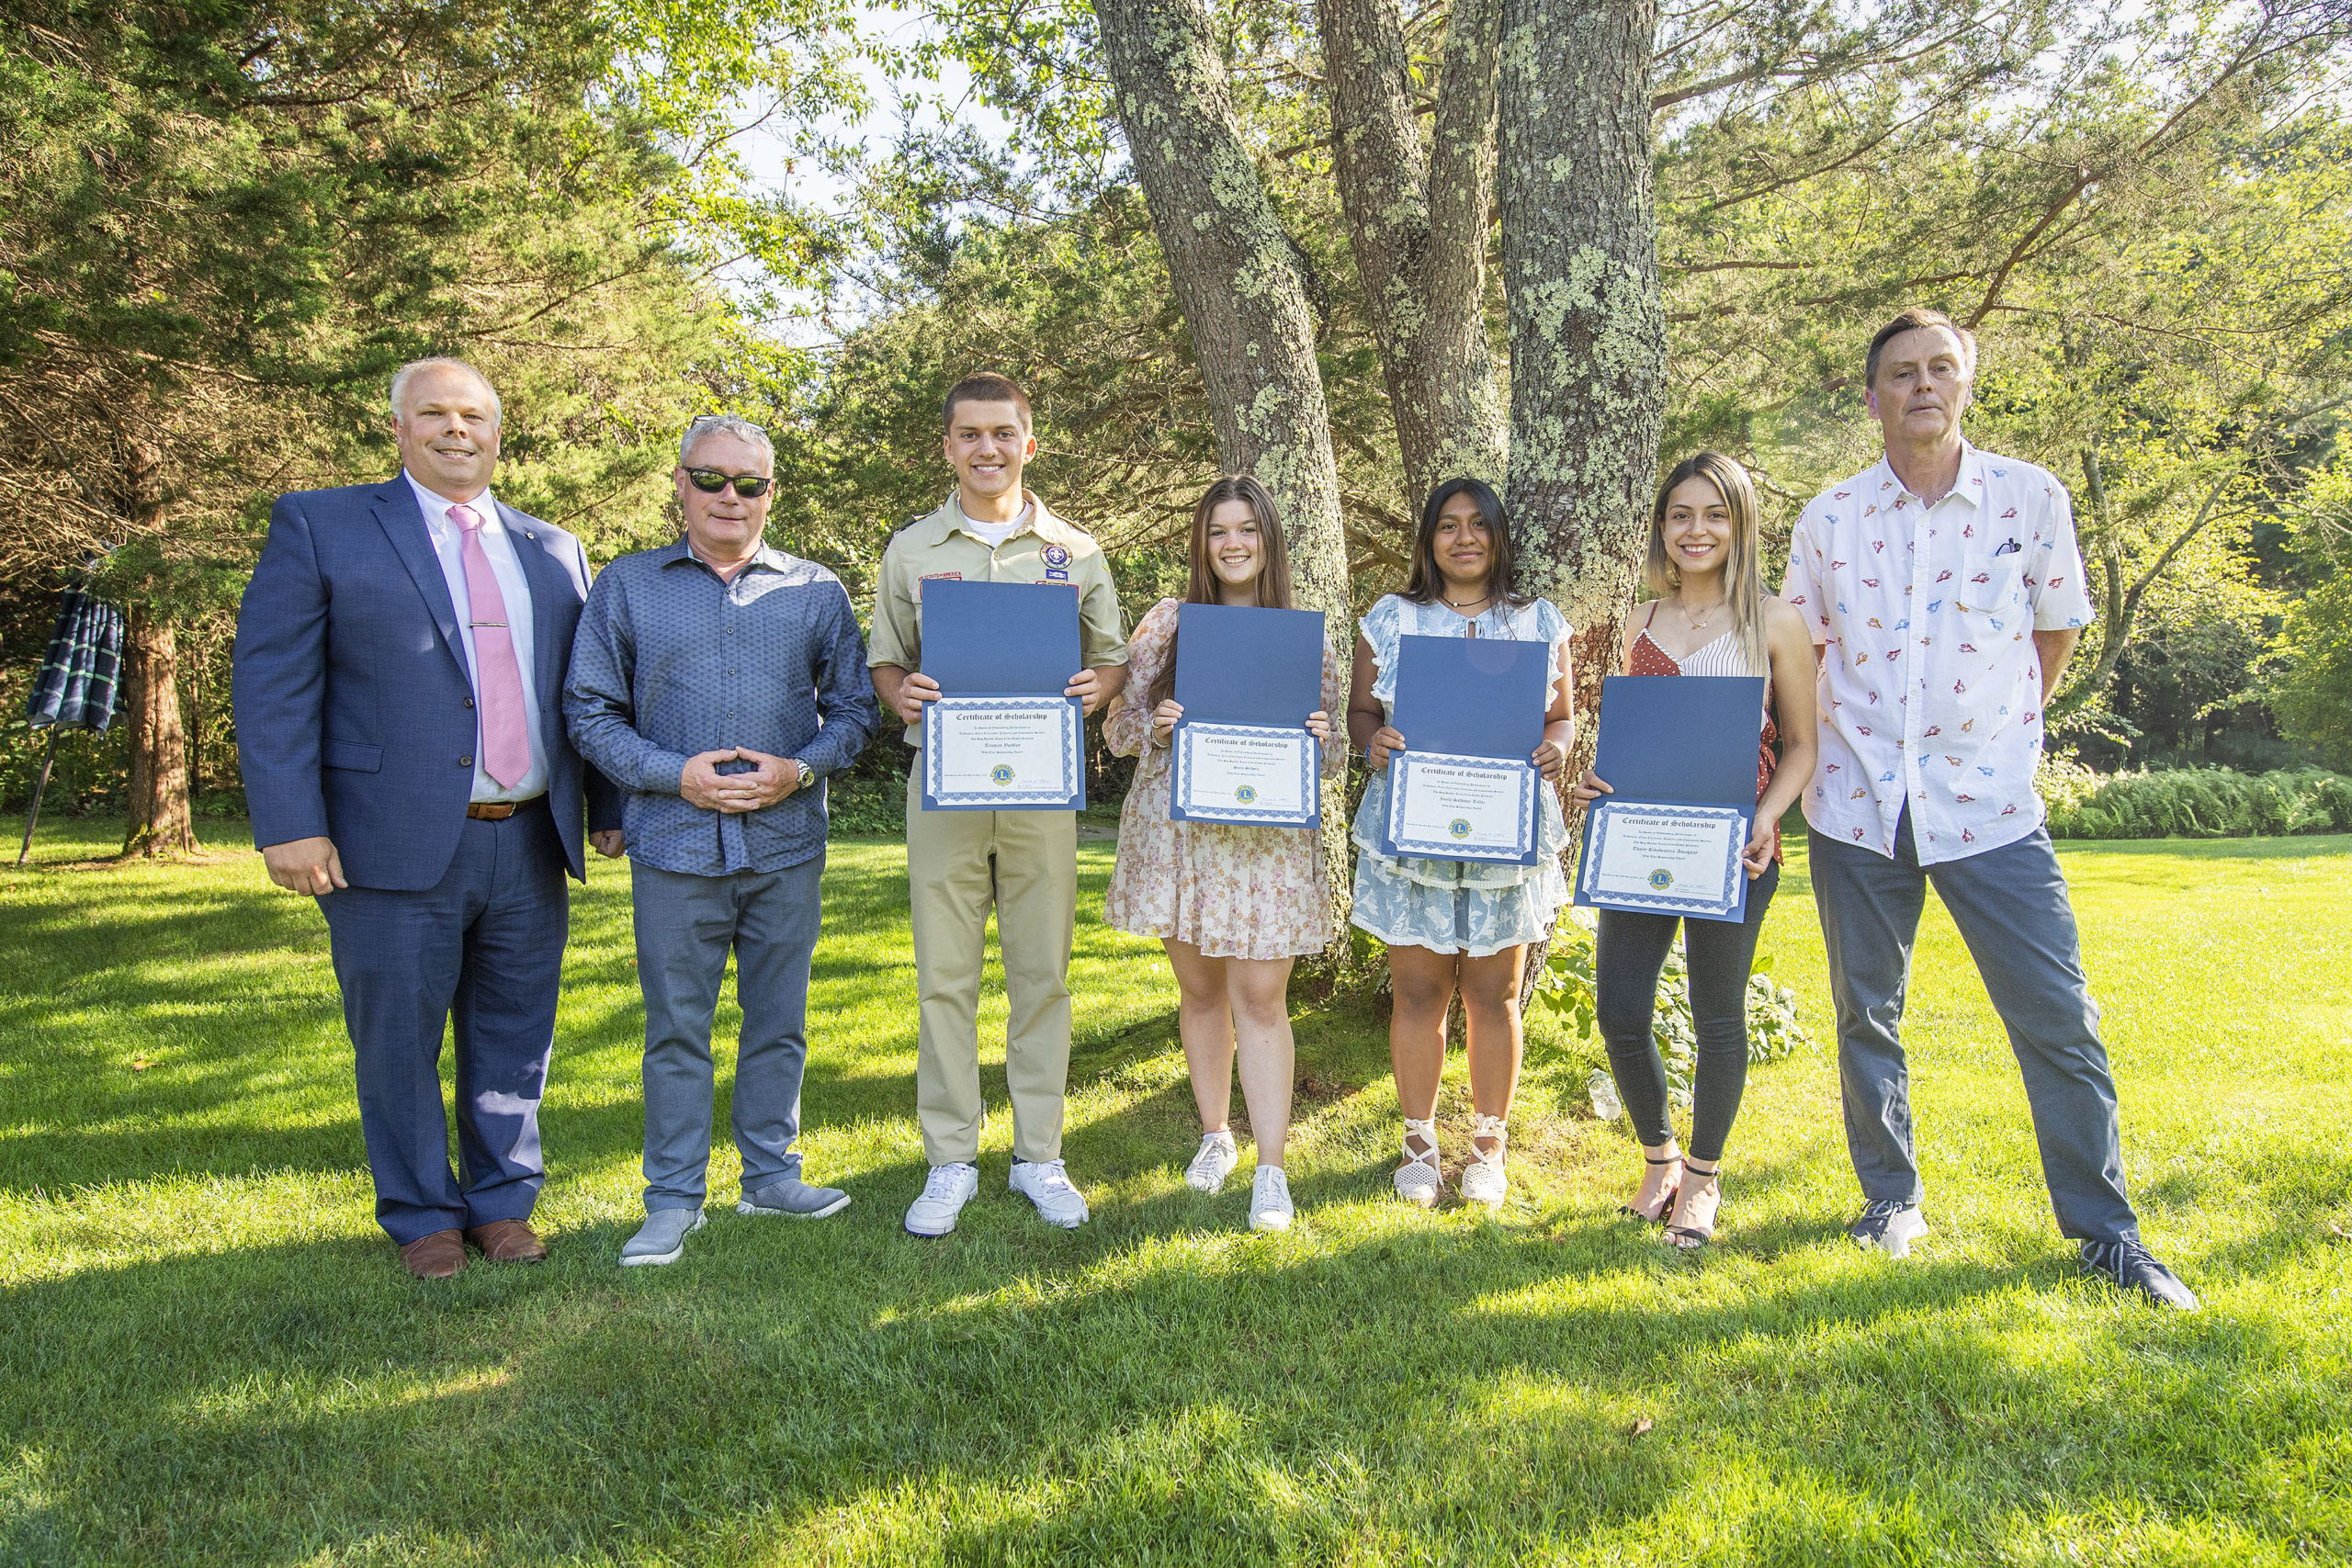 Pierson High School students Truman Yardley, Sara Schoen, Iaiele Saldivar-Tellez and Thaily Ribadeneira-Amaguay were recipients of the 2021 Sag Harbor Lions Club Scholarship Awards, which were presented to them by Scholarship Selection Committee Chair Mark Poitras, Former Lions Club President Tony Lawless and First Vice President Paul Zaykowski during a ceremony at the Zaykowski residence on July 28.